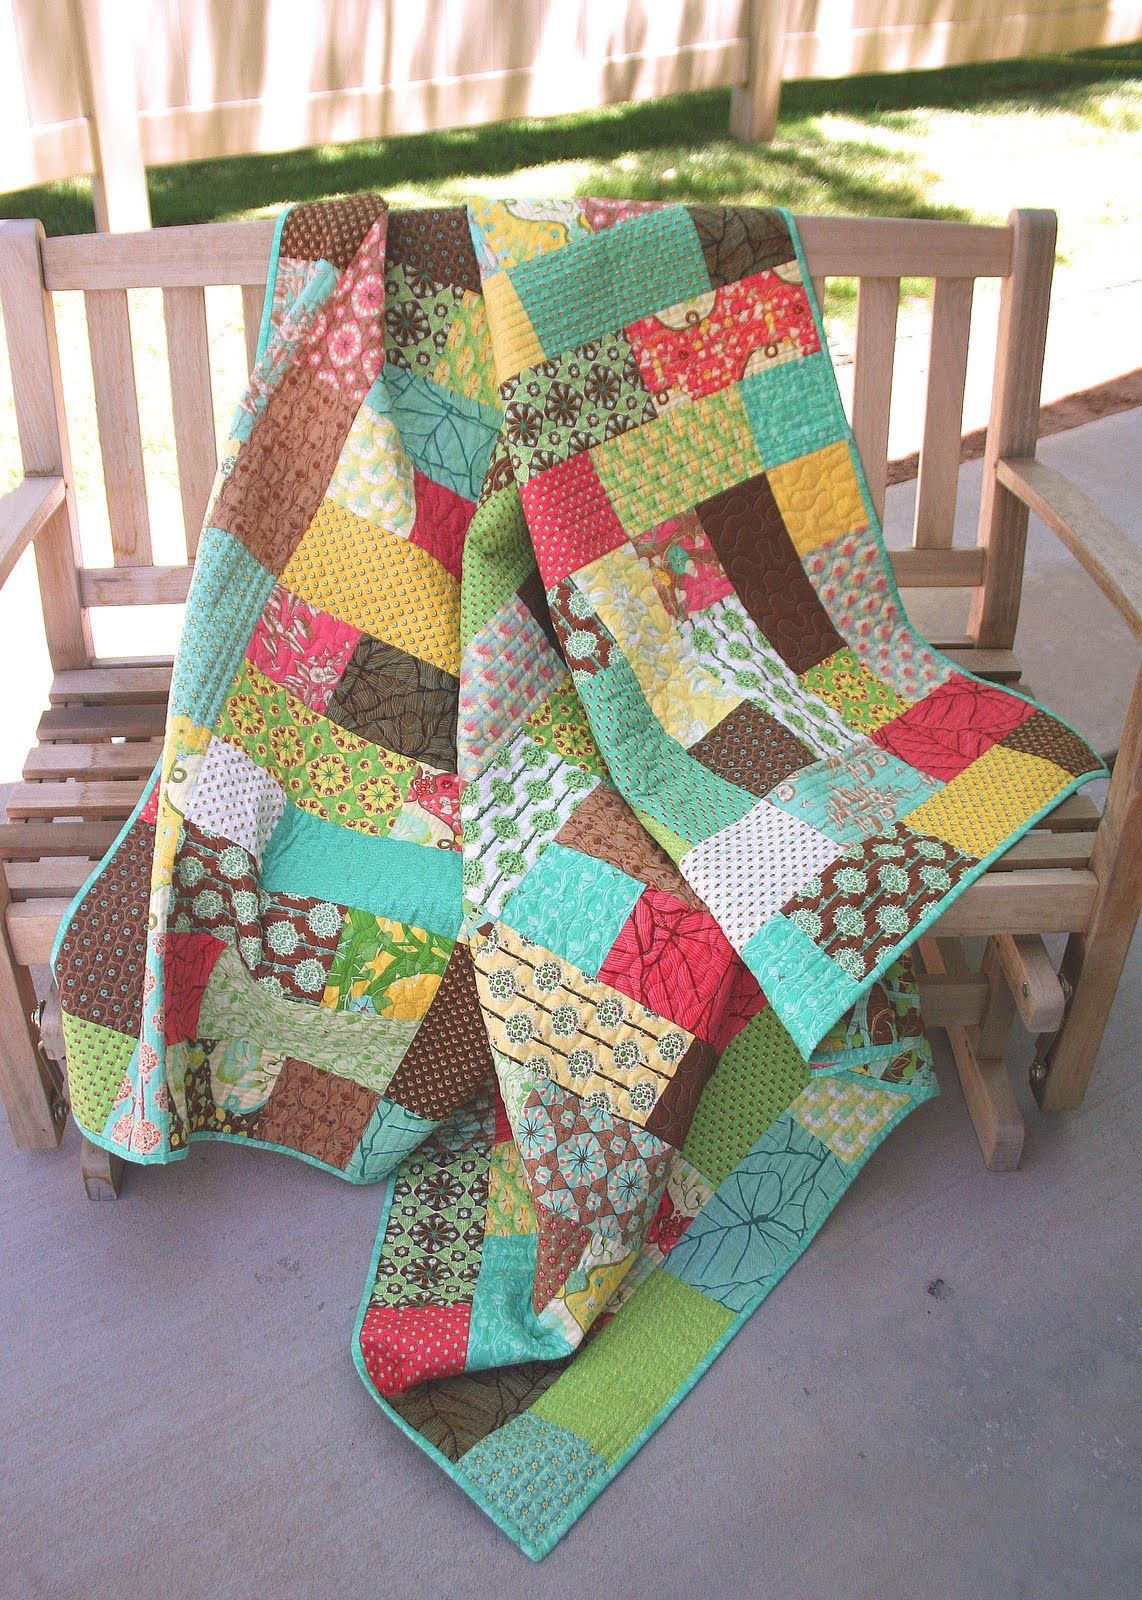 I Am So Excited To Be Sharing My First Quilt Tutorial I Fell In